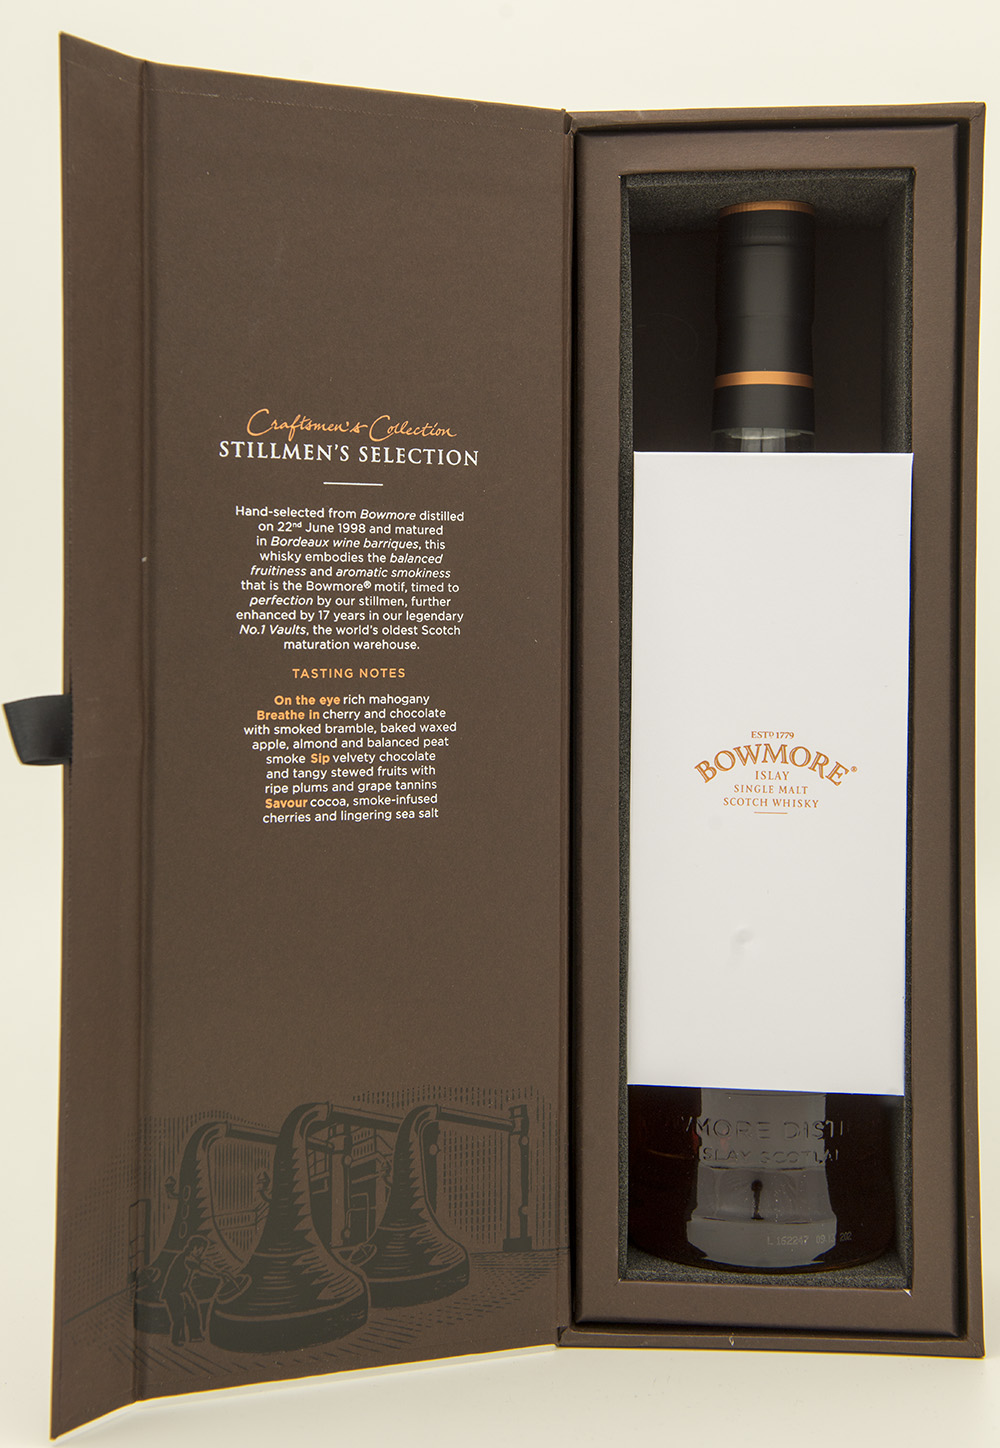 Billede: DSC_3221 - Bowmore Stillmen's Selection - box open.jpg